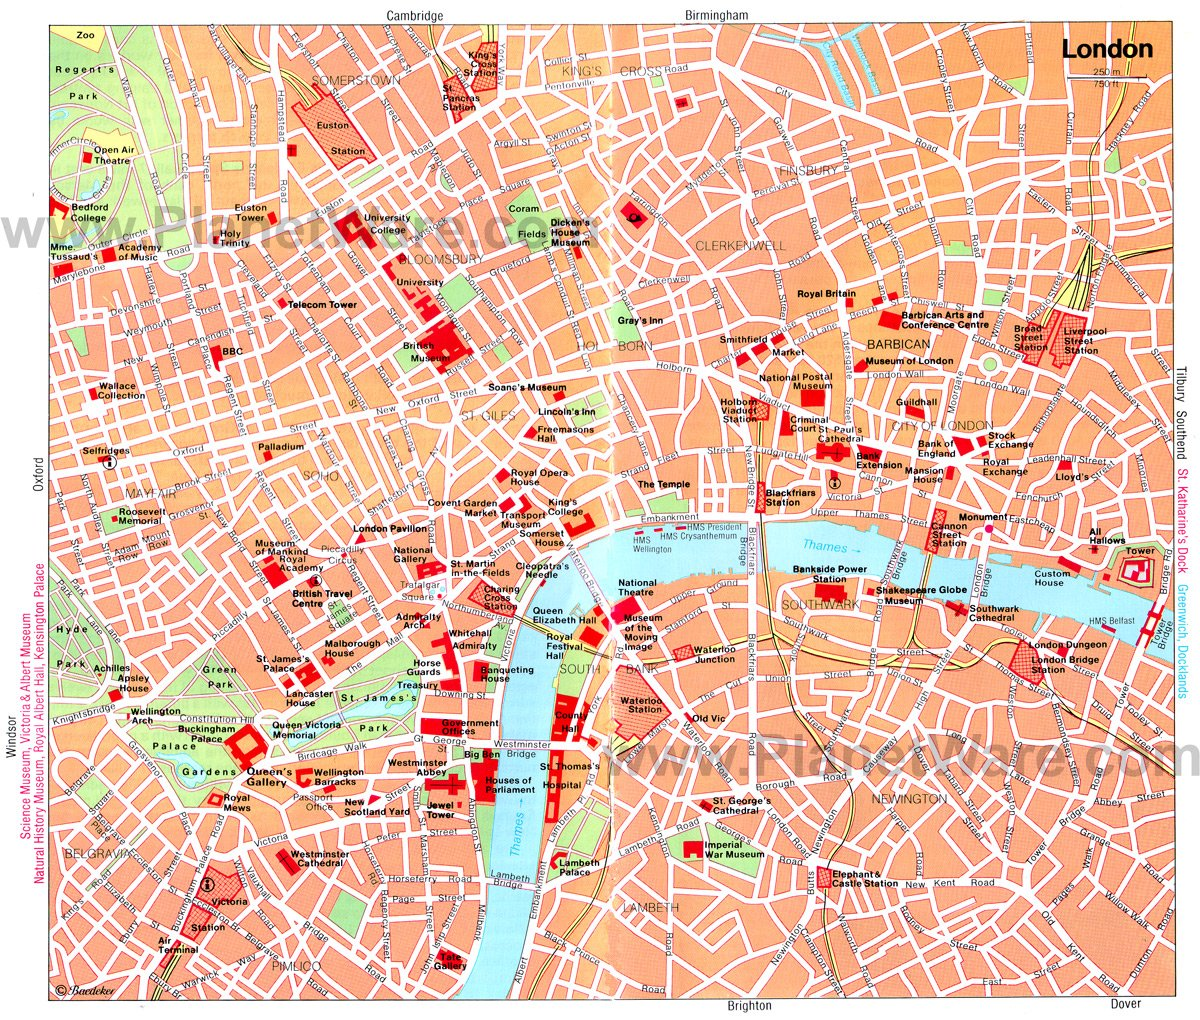 17 TopRated Tourist Attractions in London – Tourist Attractions Map In London